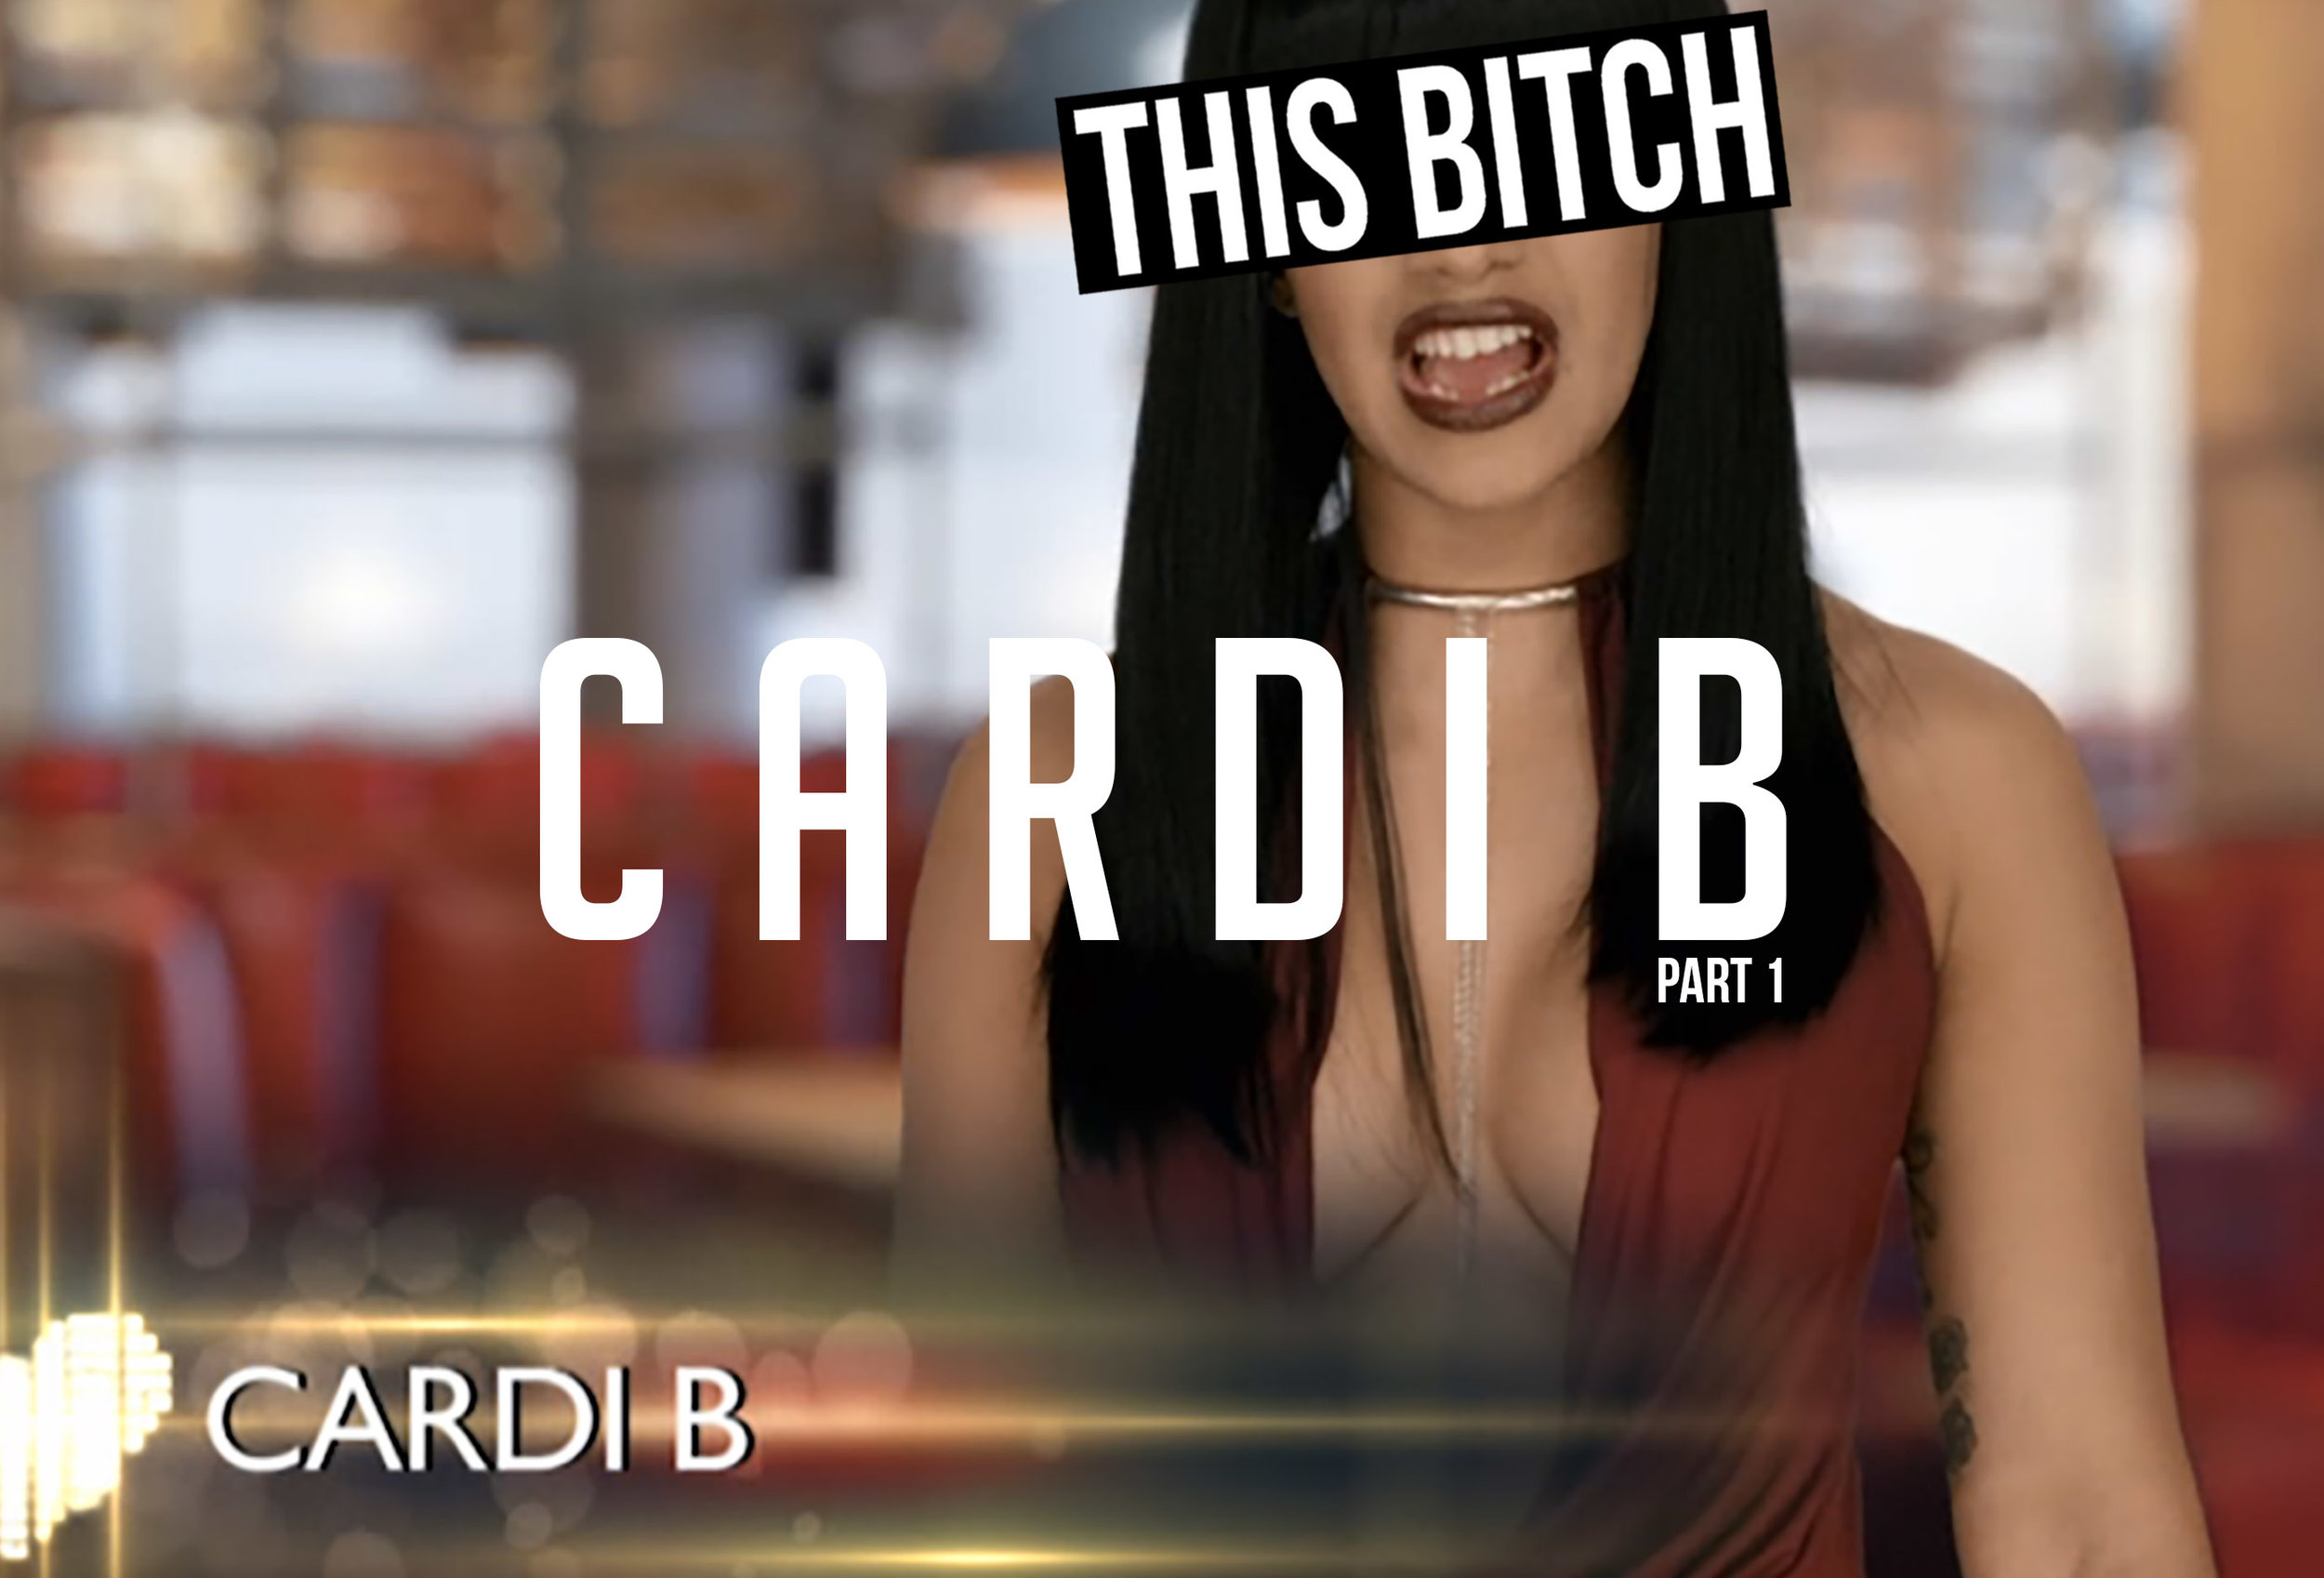 this bitch cardi b part 1